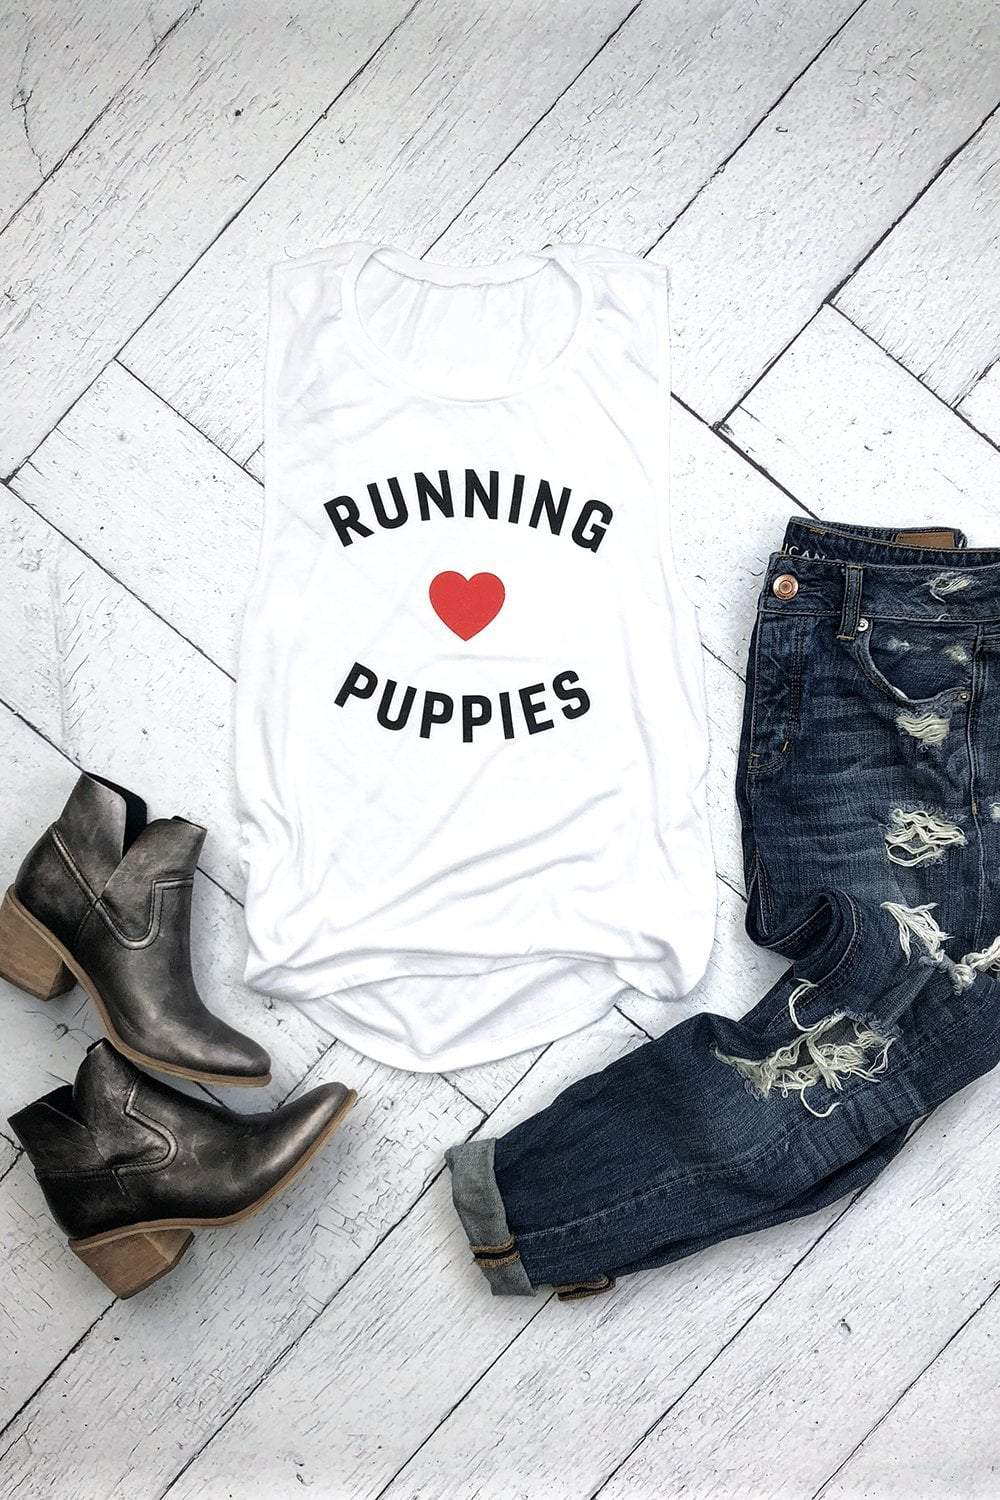 Running & Puppies Tank - Sarah Marie Design Studio